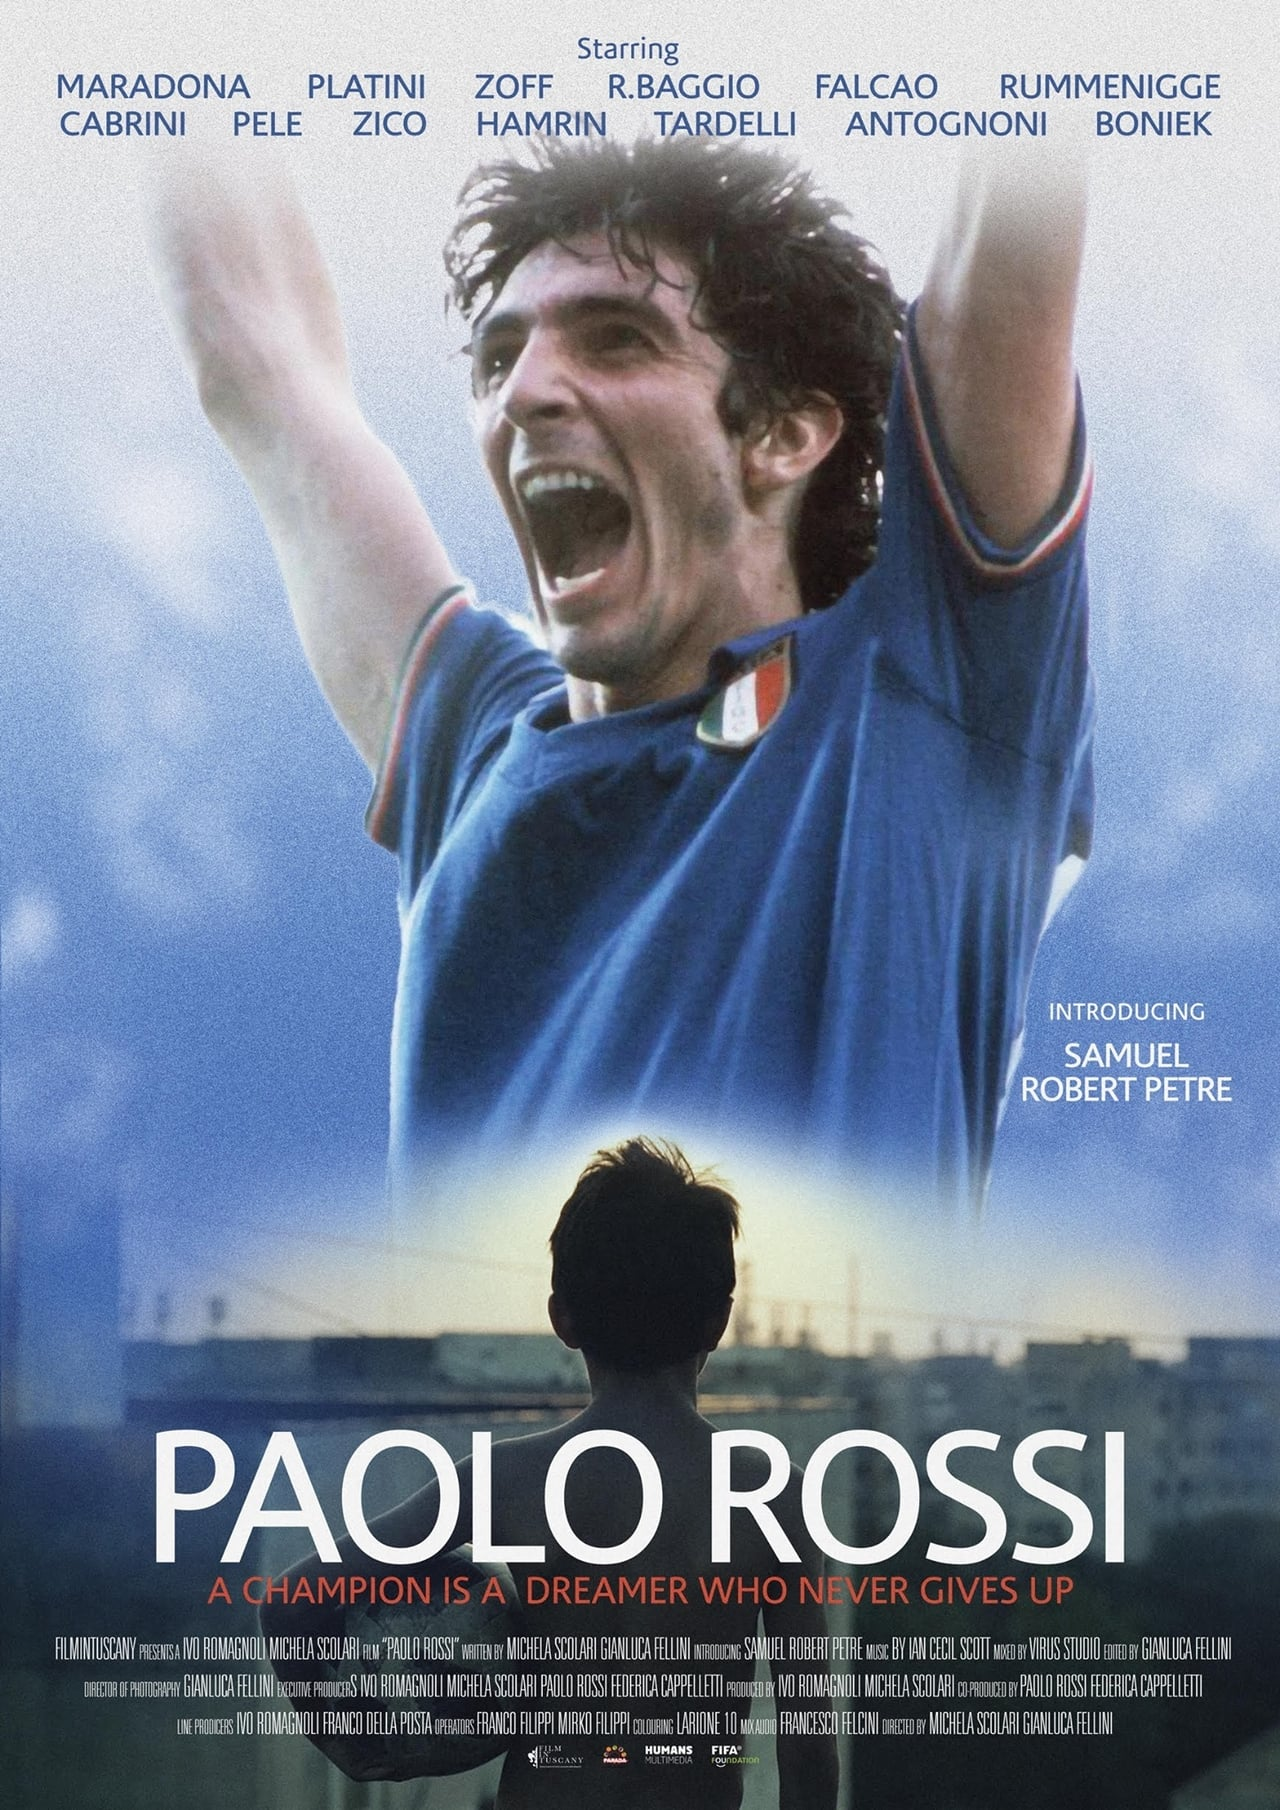 Paolo Rossi: A Champion is a Dreamer Who Never Gives Up